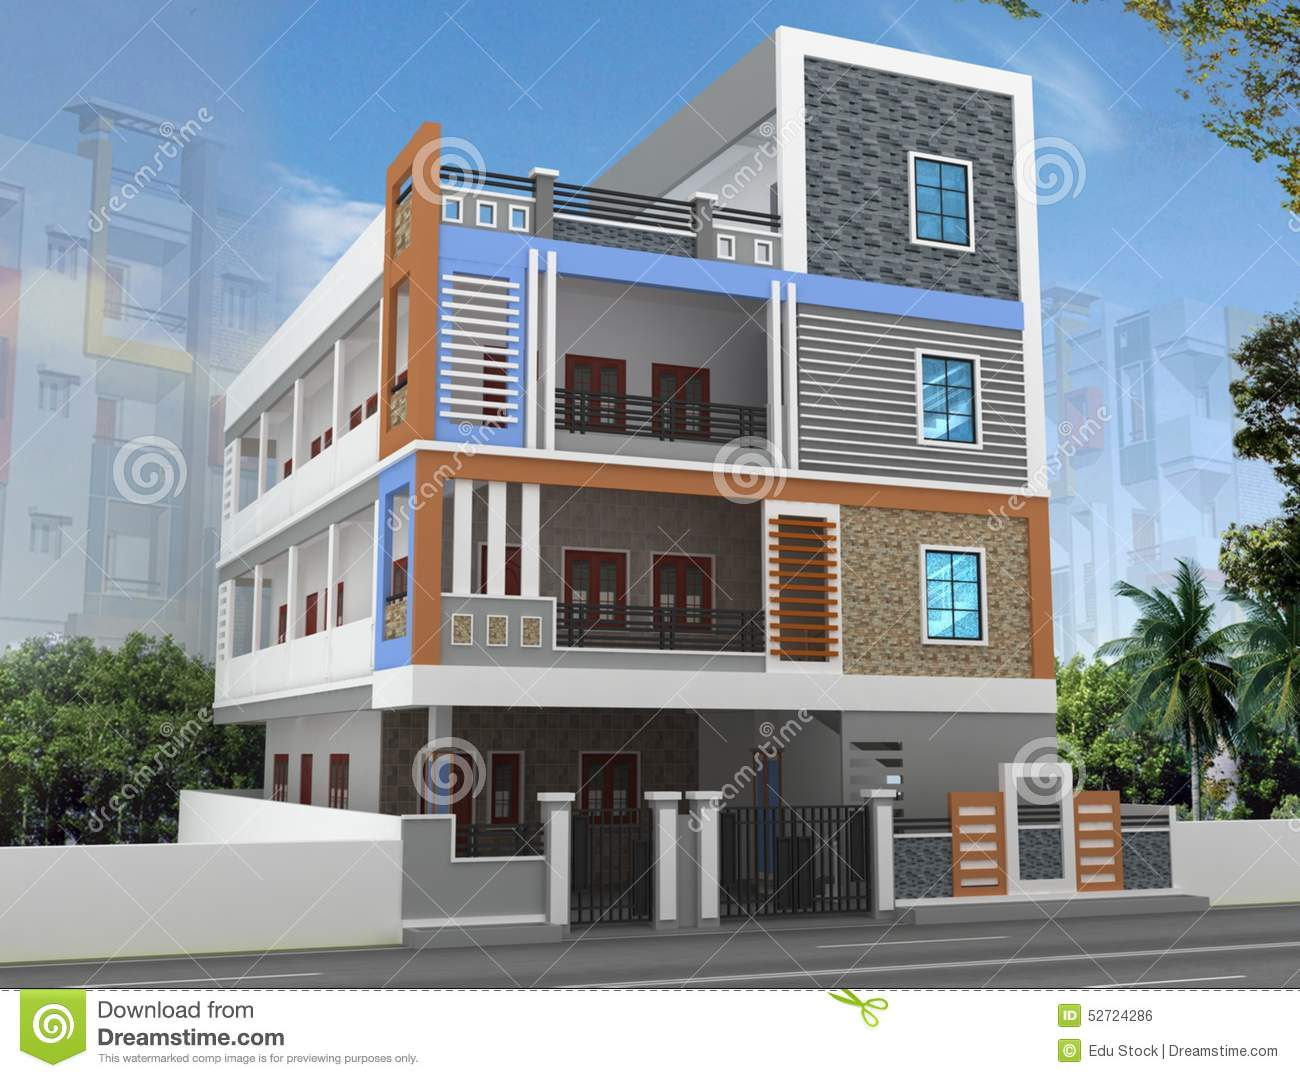 Design Your Home Online With Room Visualizer 3d Building Elevation Stock Photo Image 52724286